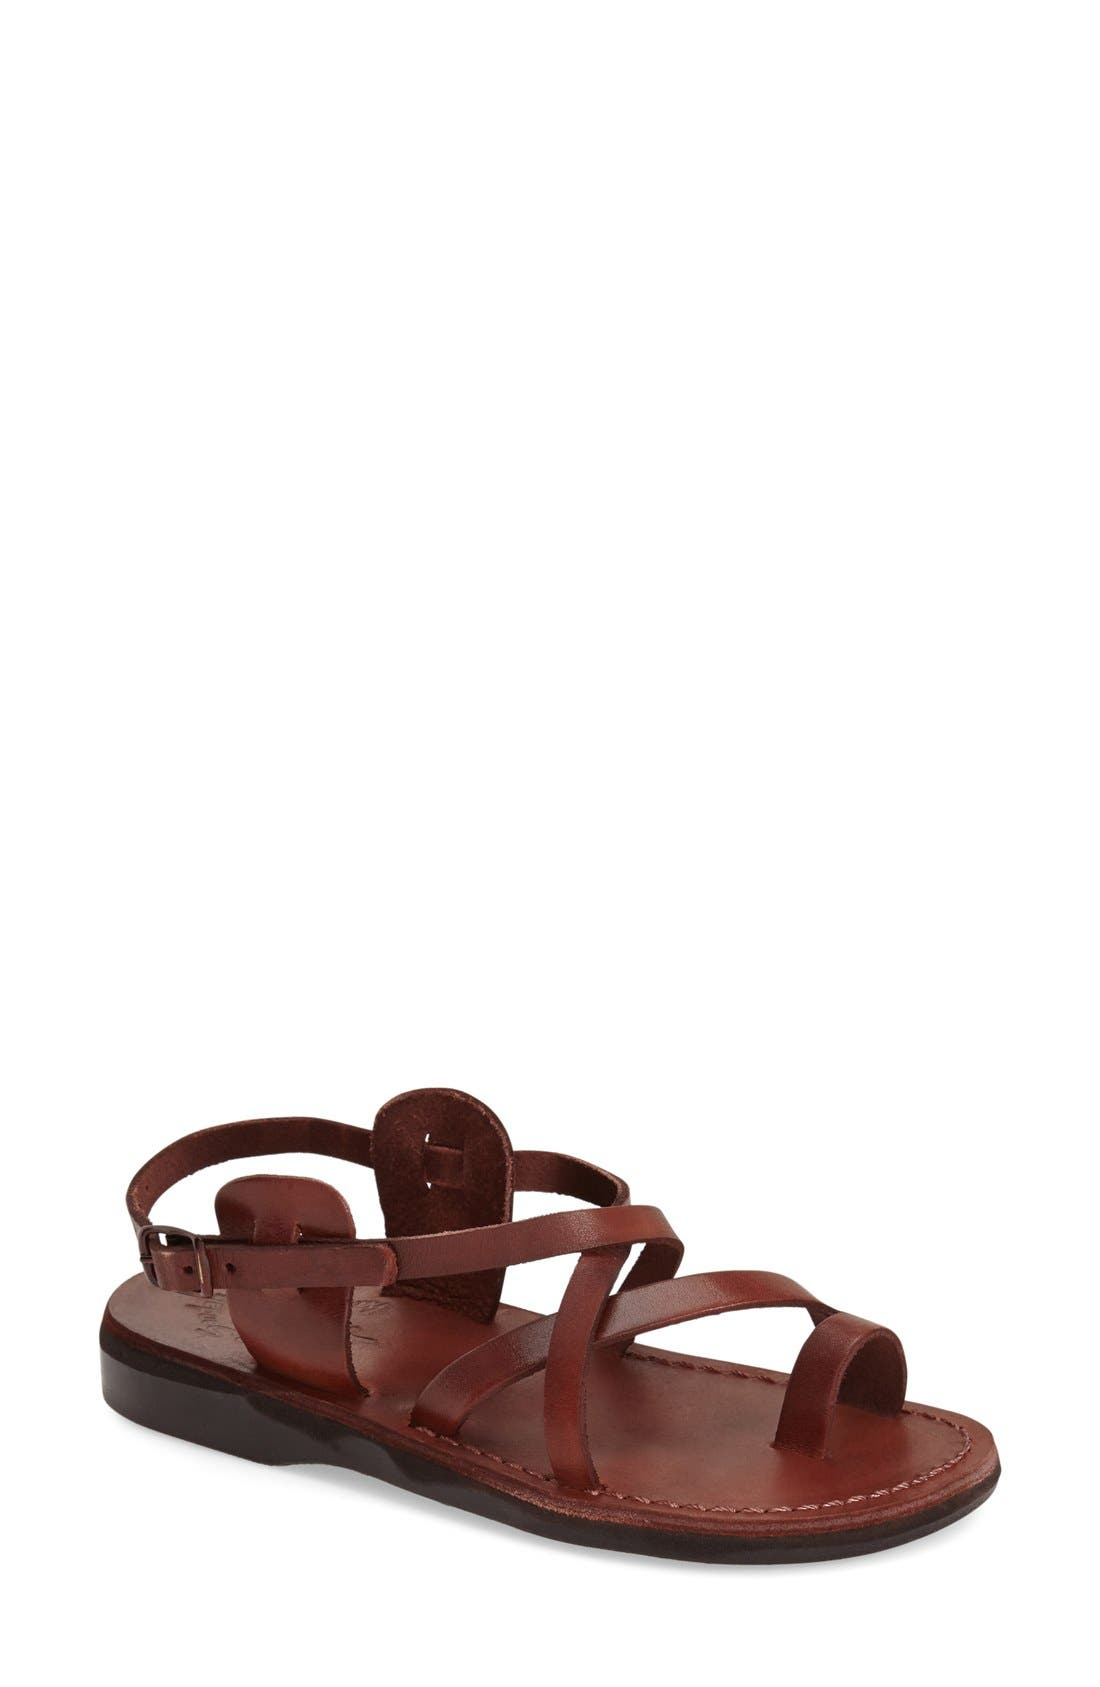 'The Good Shepard' Strappy Sandal,                         Main,                         color, 200